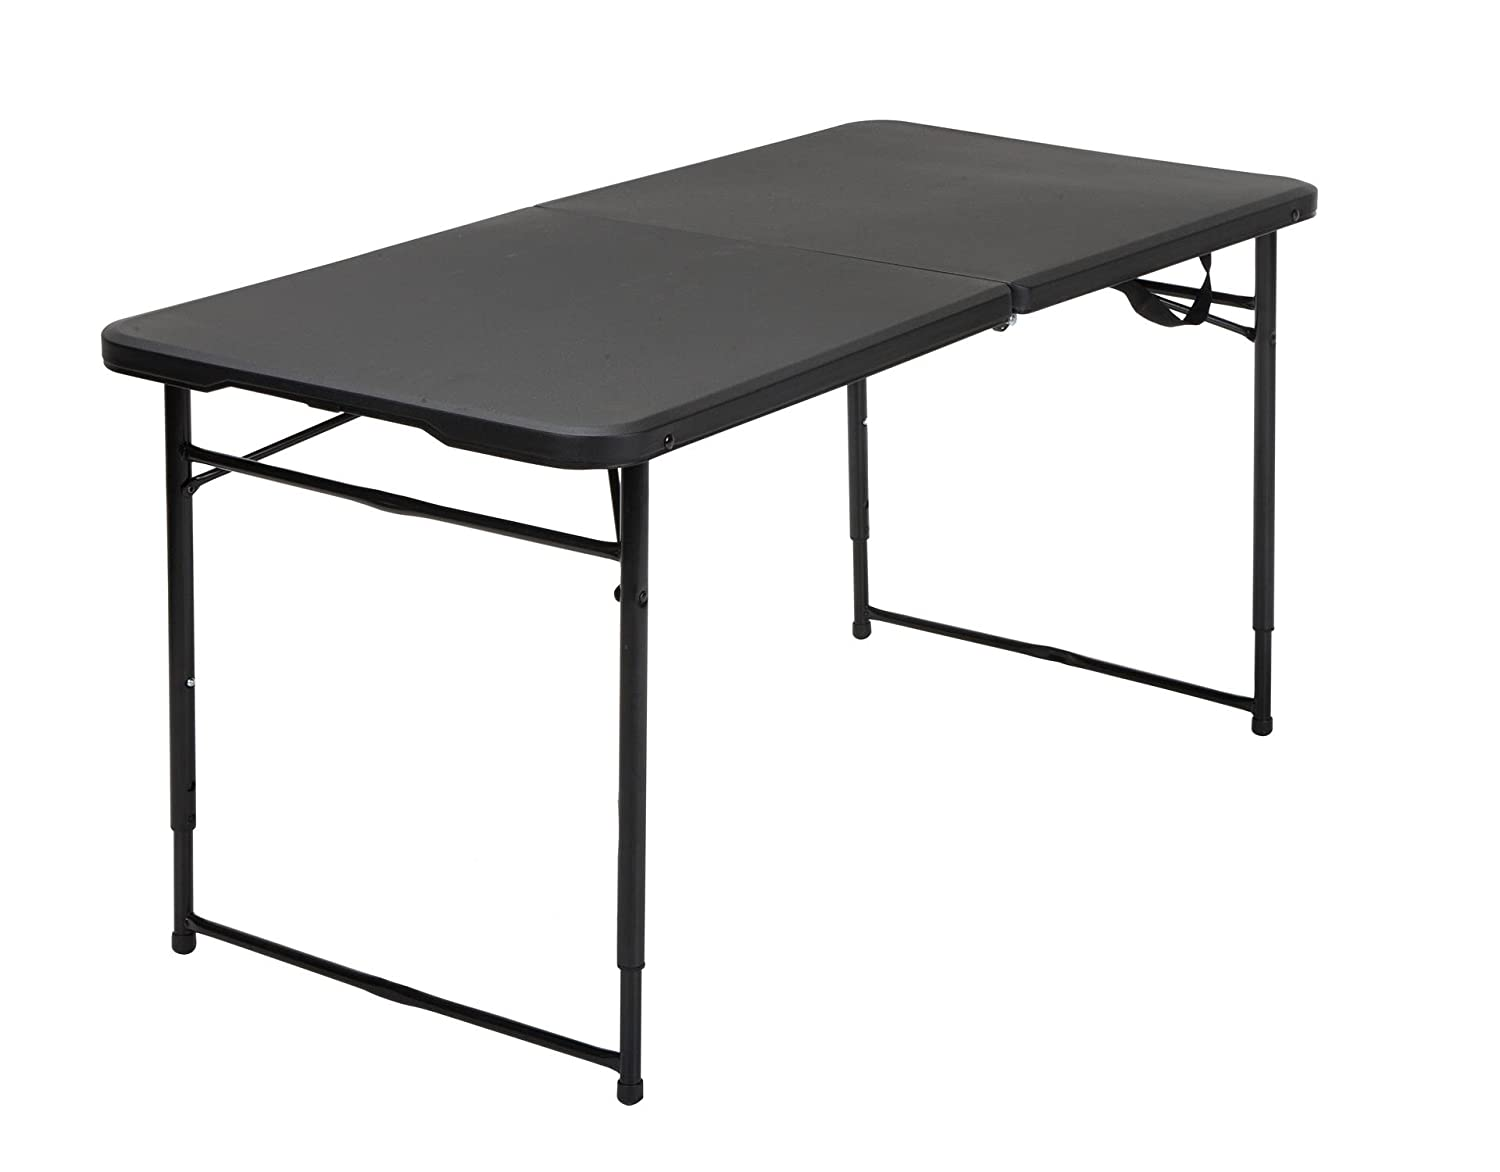 Amazon.com   Cosco 14402BLK1E Indoor Outdoor Adjustable Height Center Fold  Tailgate Table With Carrying Handle, 4u0027, Black   Table Benches